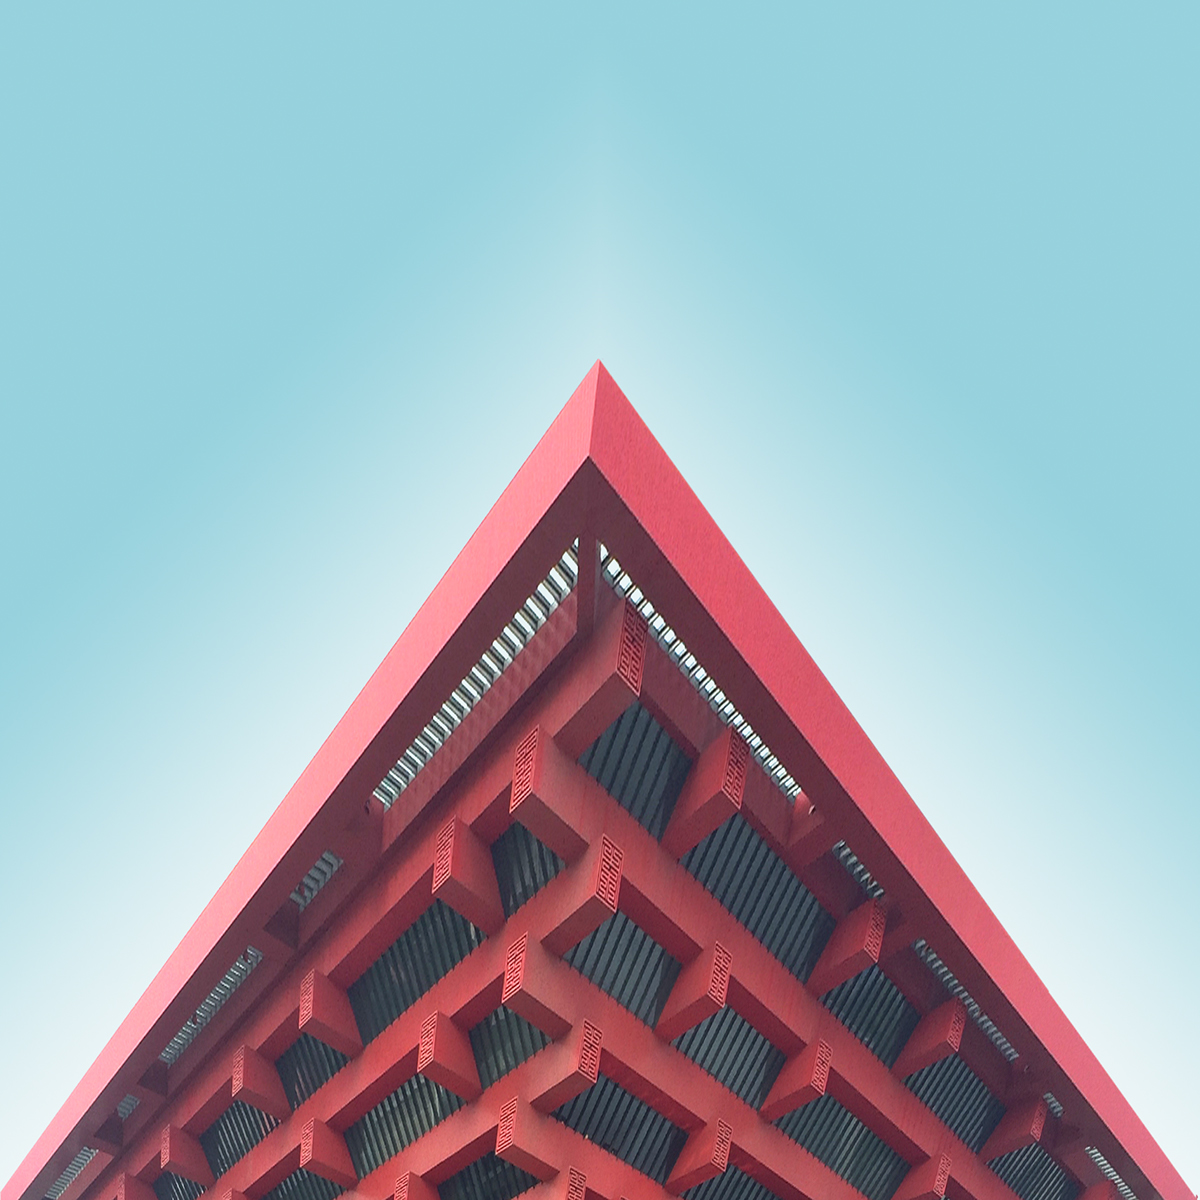 Shapes of Iconic China's Architecture